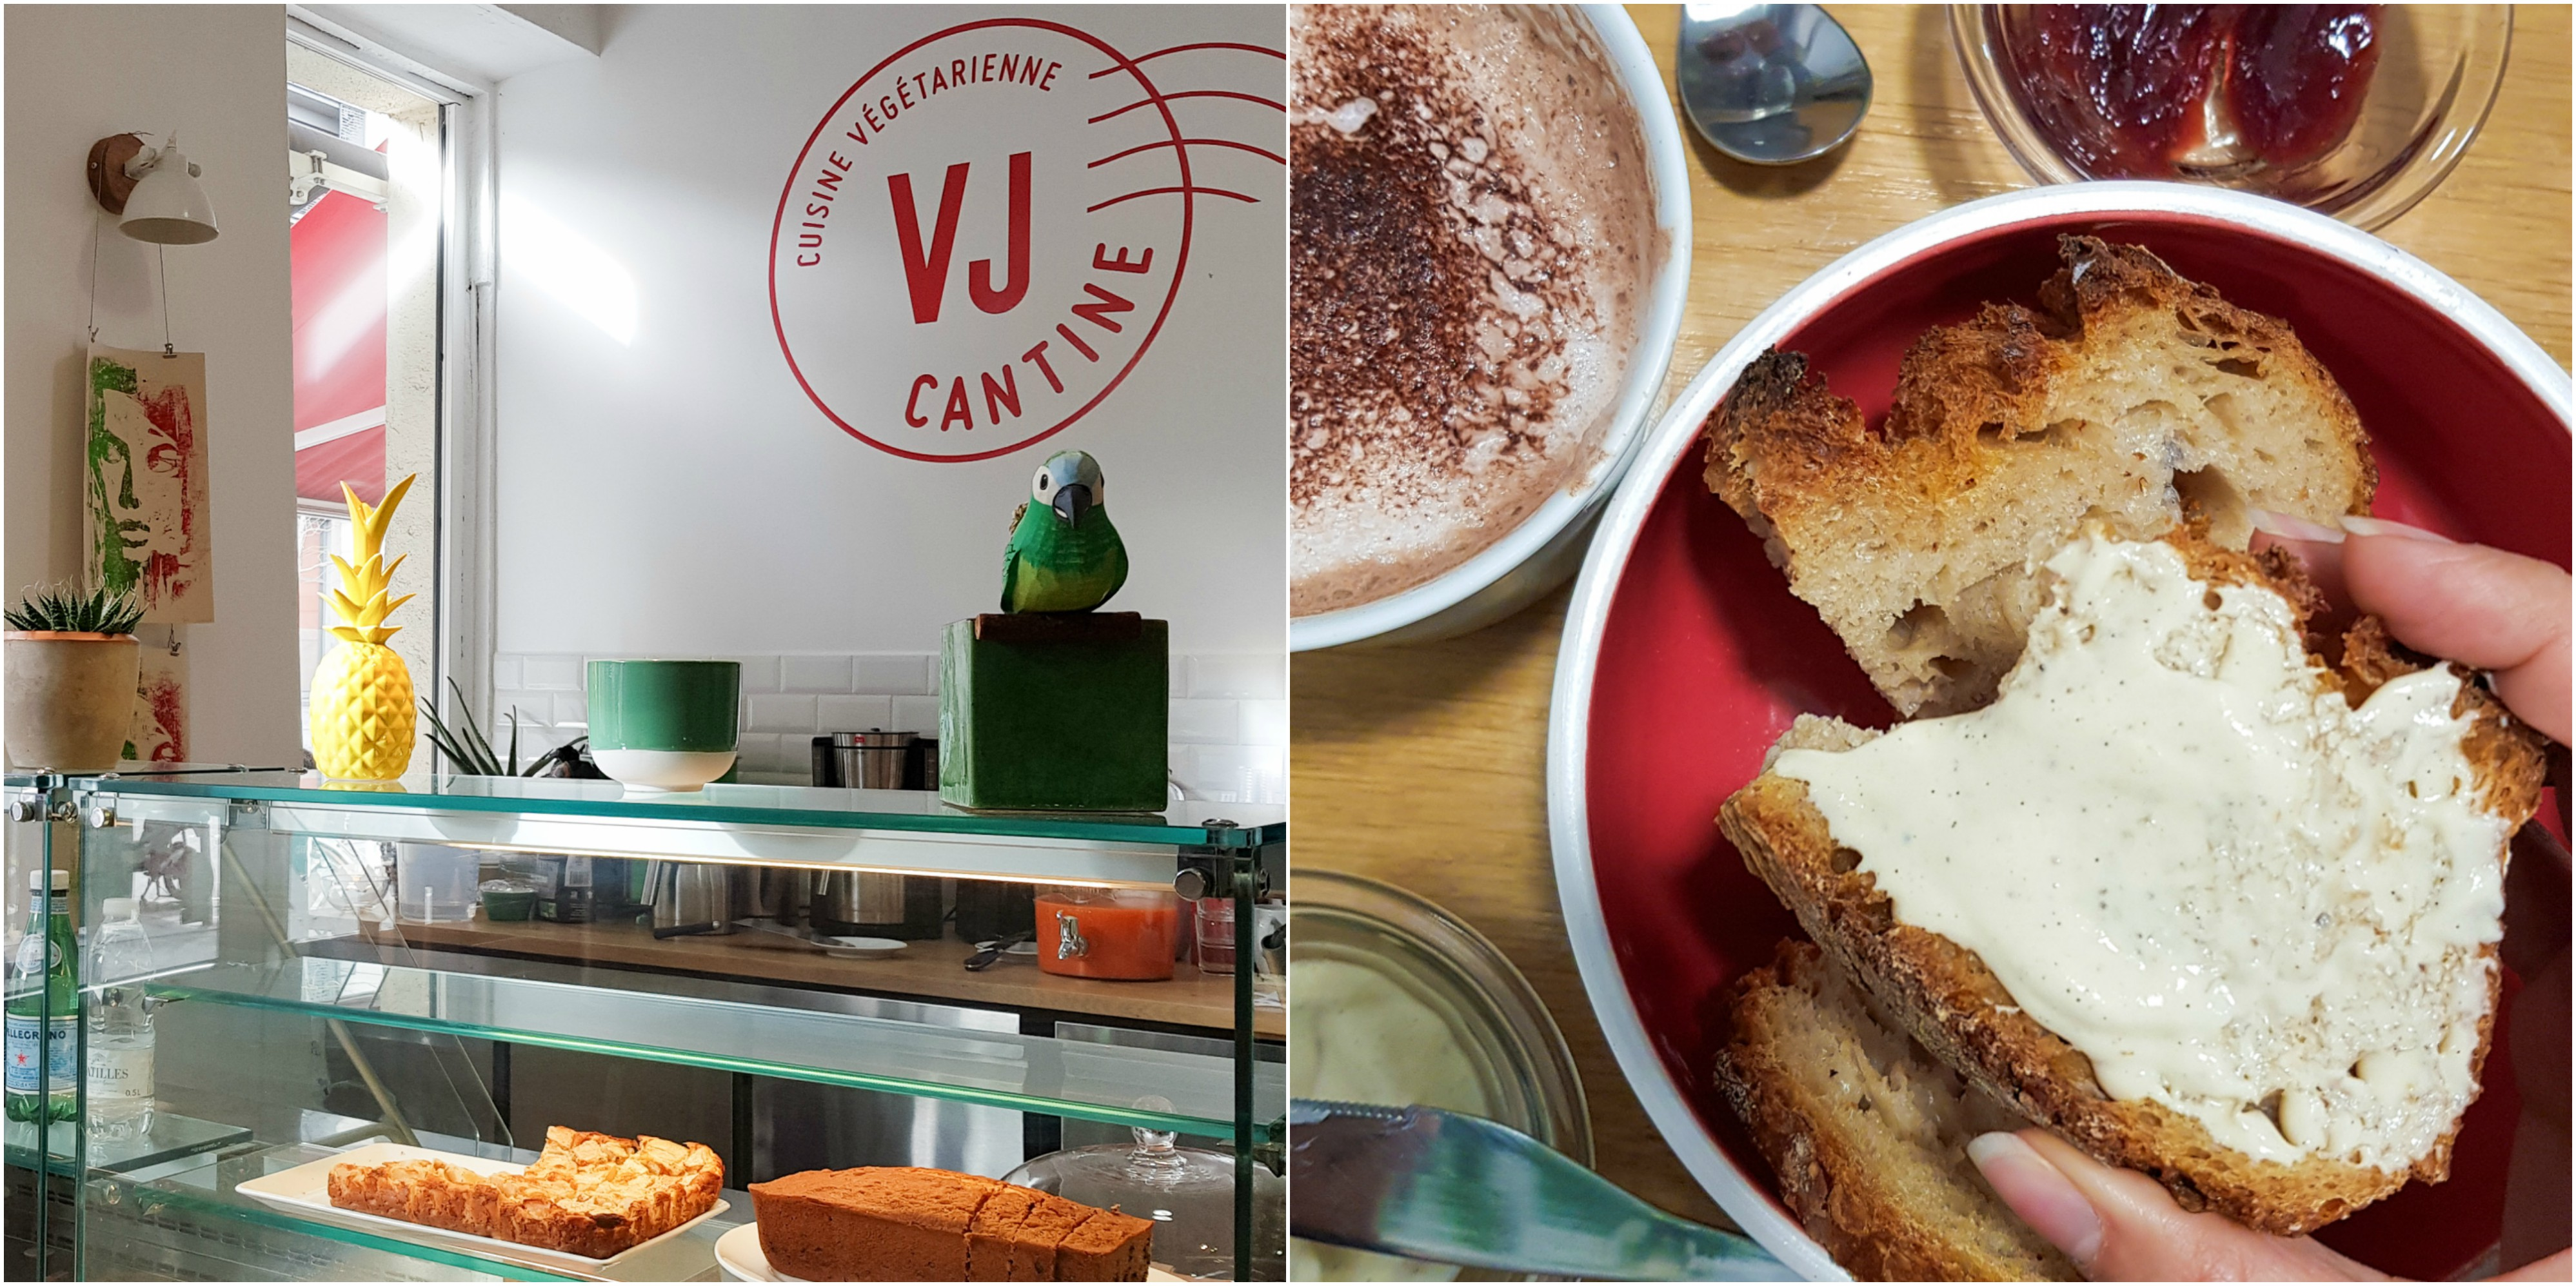 vj-cantine-vegan-bordeaux-végétarien-restaurant-brunch